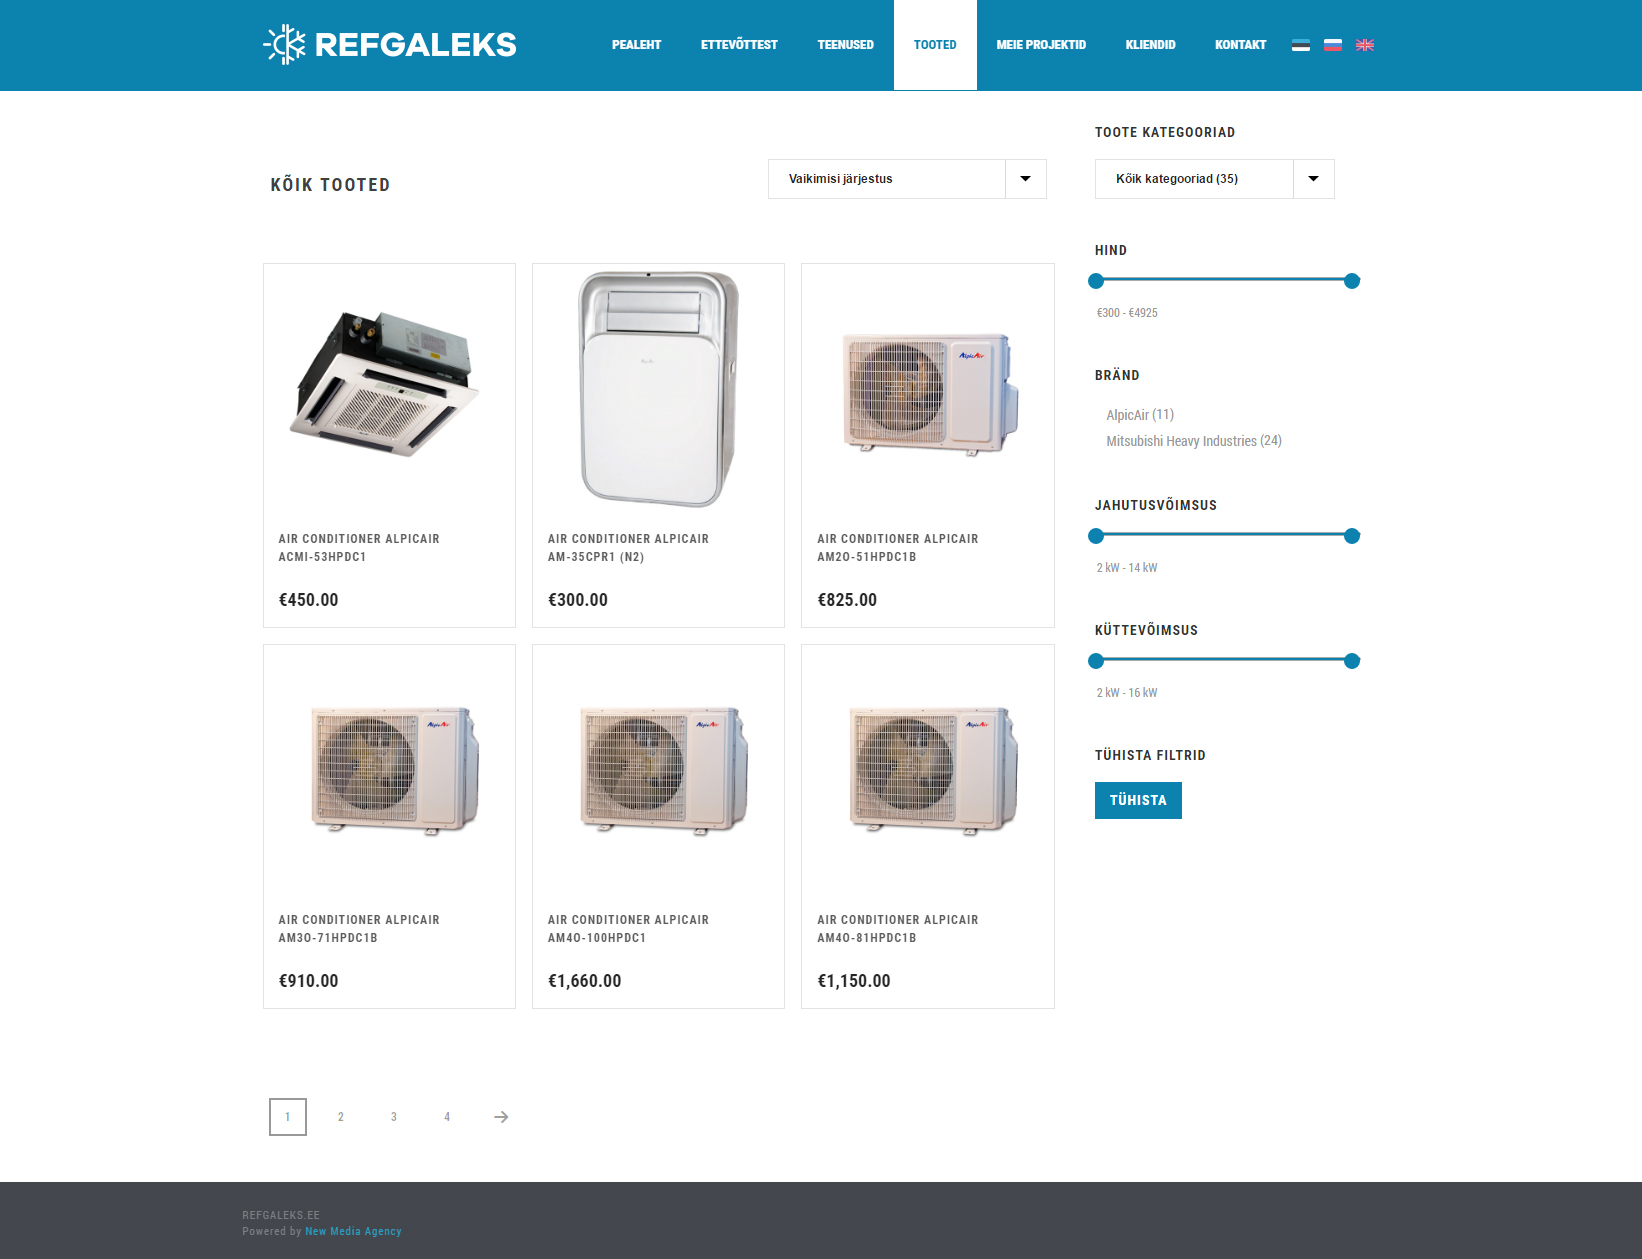 Refgaleks products